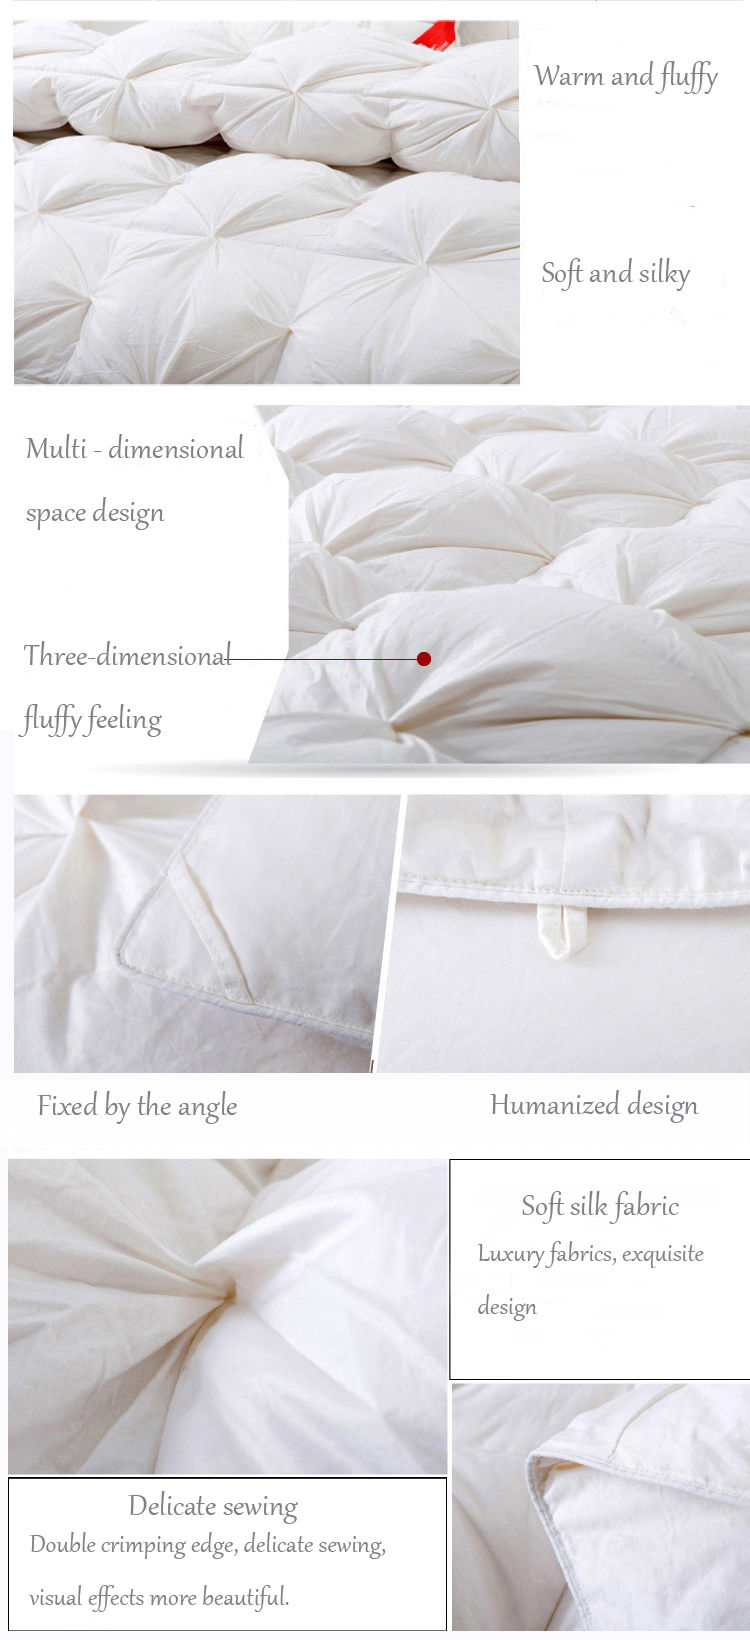 Multidimensional space duvet quilt White goose quilts European court warm and soft quilts comforter02